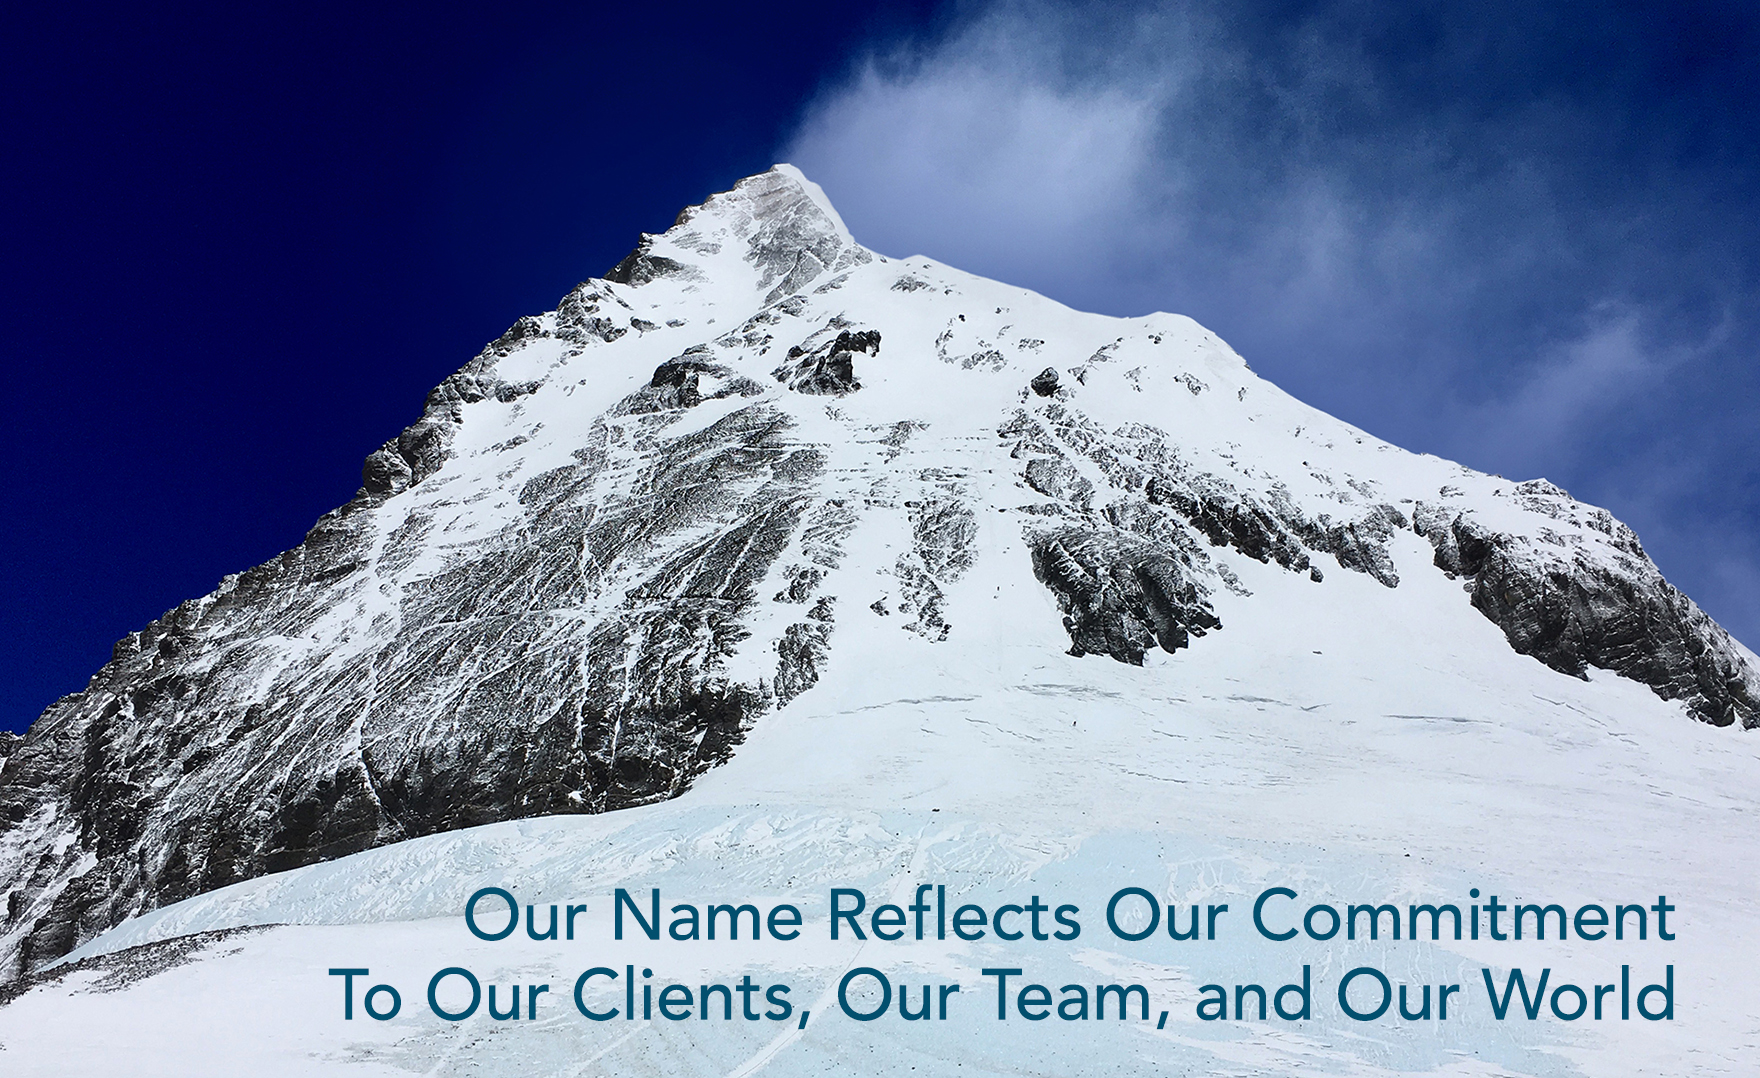 Our Name Reflects Our Commitment To Our Clients, Our Team, and Our World